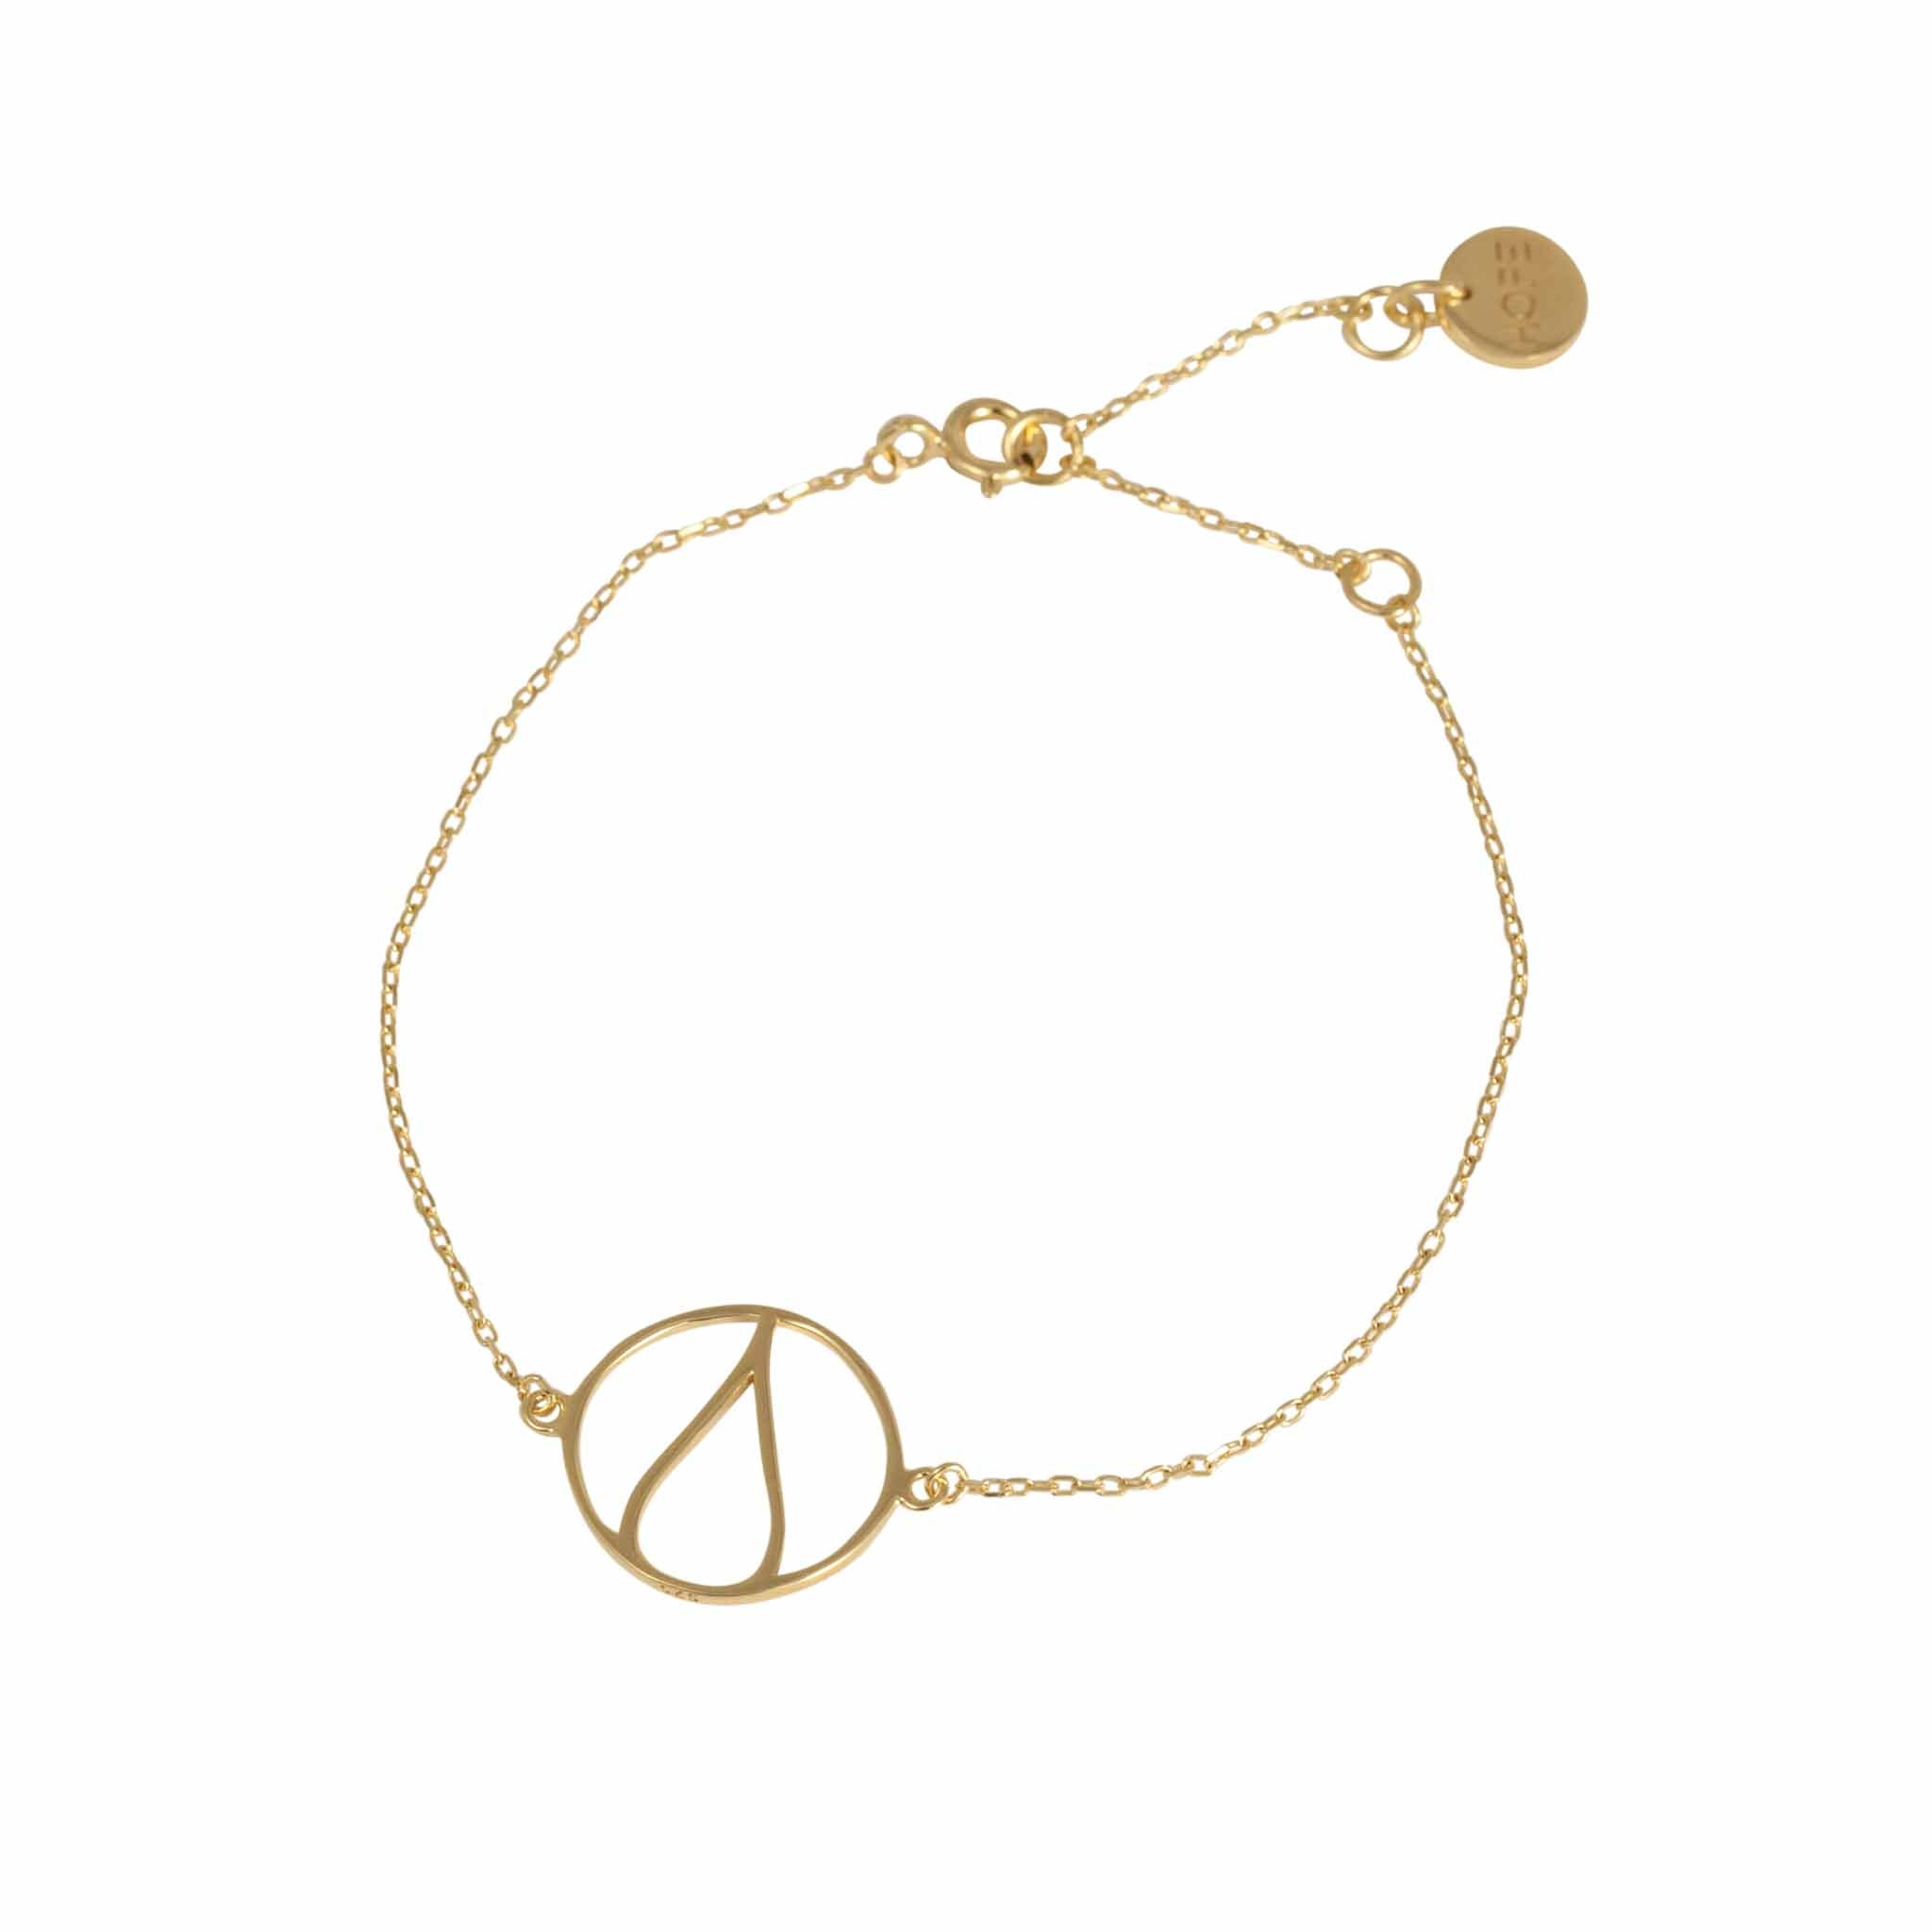 One Ocean Gold Bracelet. The symbol is a water drop in a circle that symbolizes our earth. 100% recycled silver jewelry ethically made in Bali.